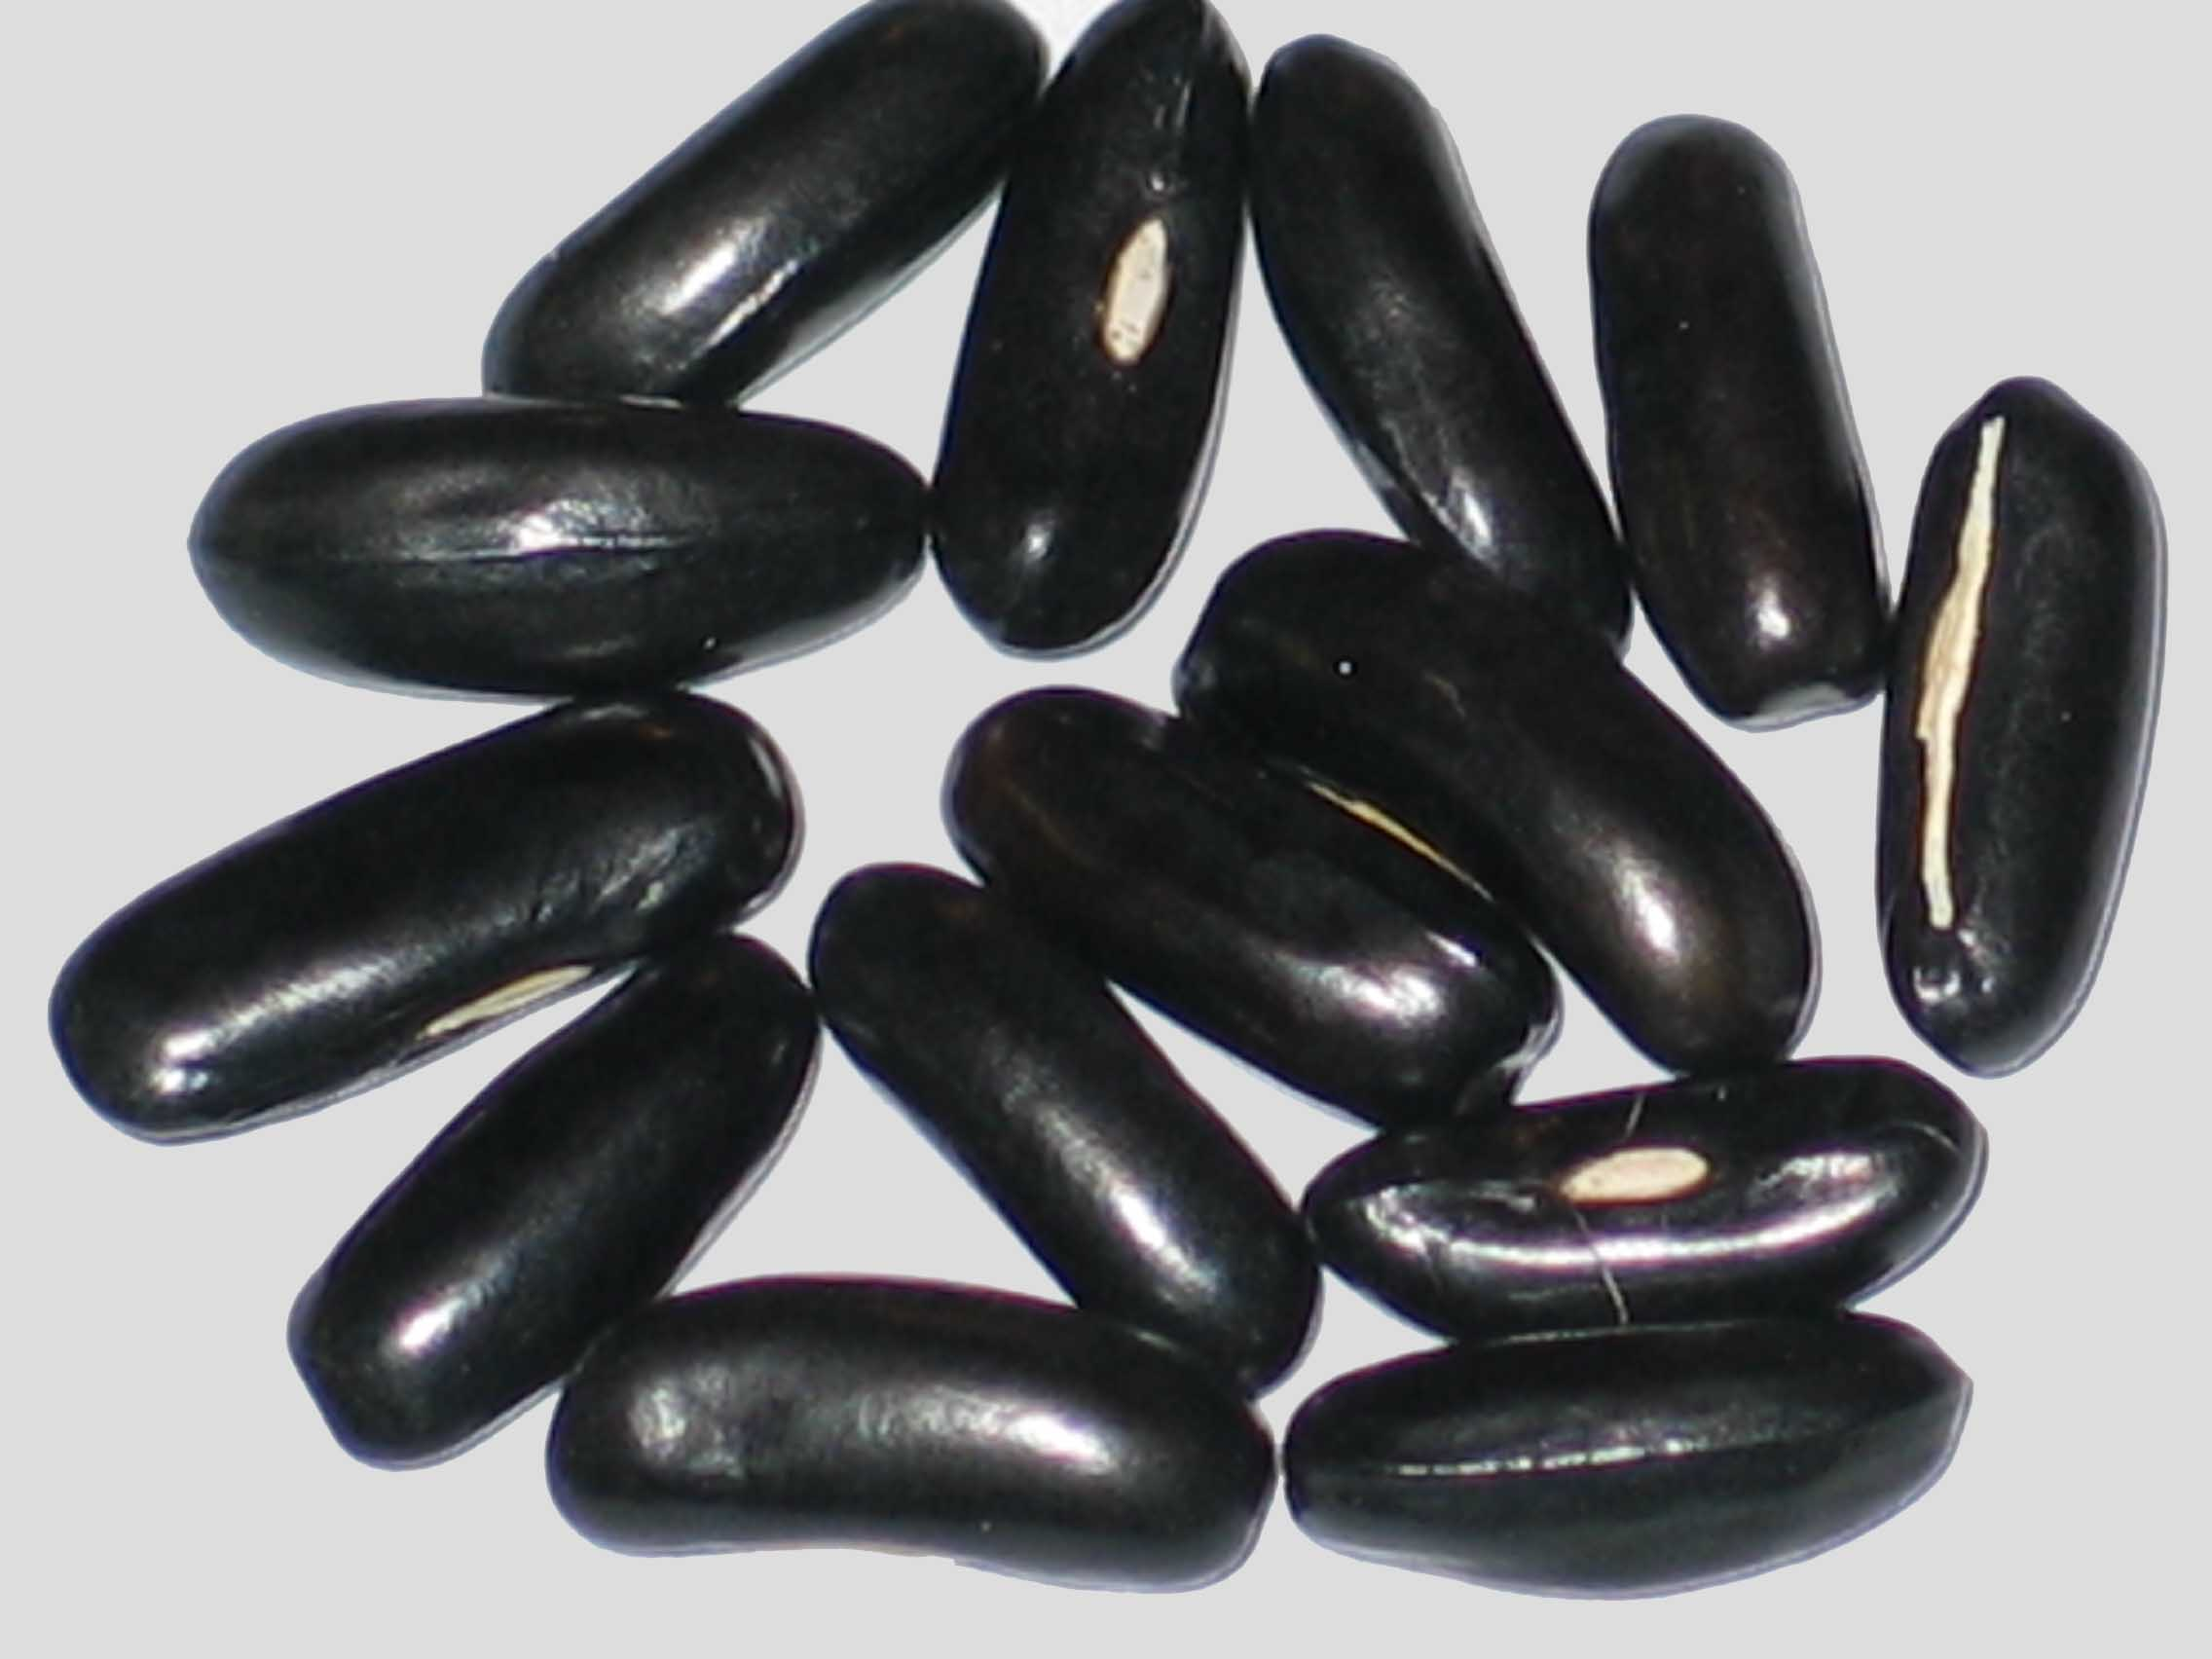 image of Honey Keygold beans